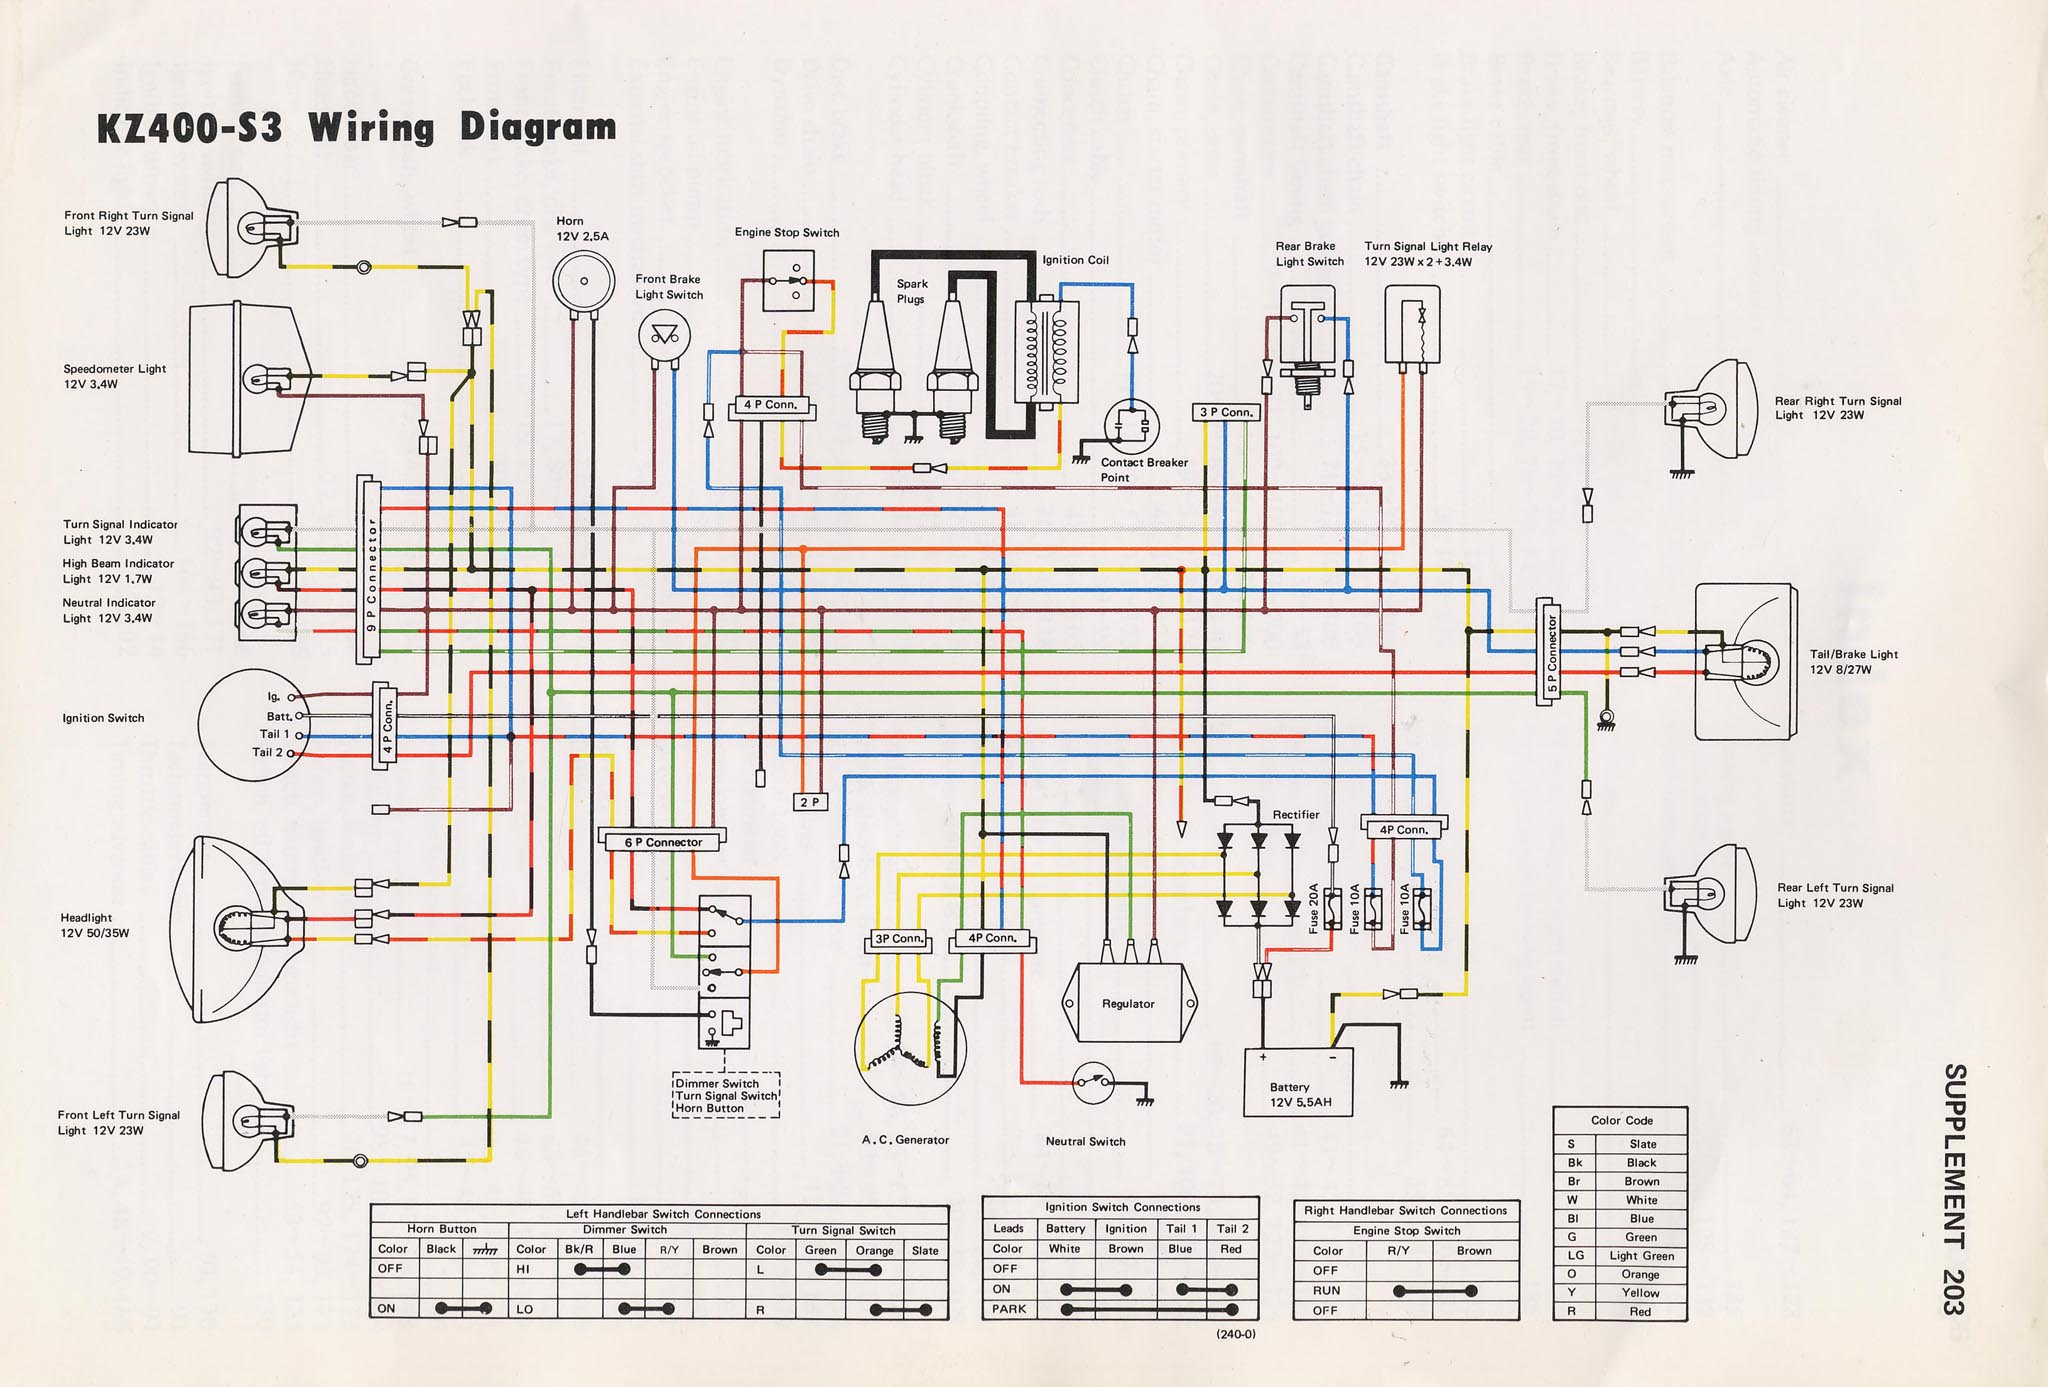 1977 Kz650 Wiring Diagram Electrical Diagrams Wire Kawasaki 650 Schematics 78 Specs